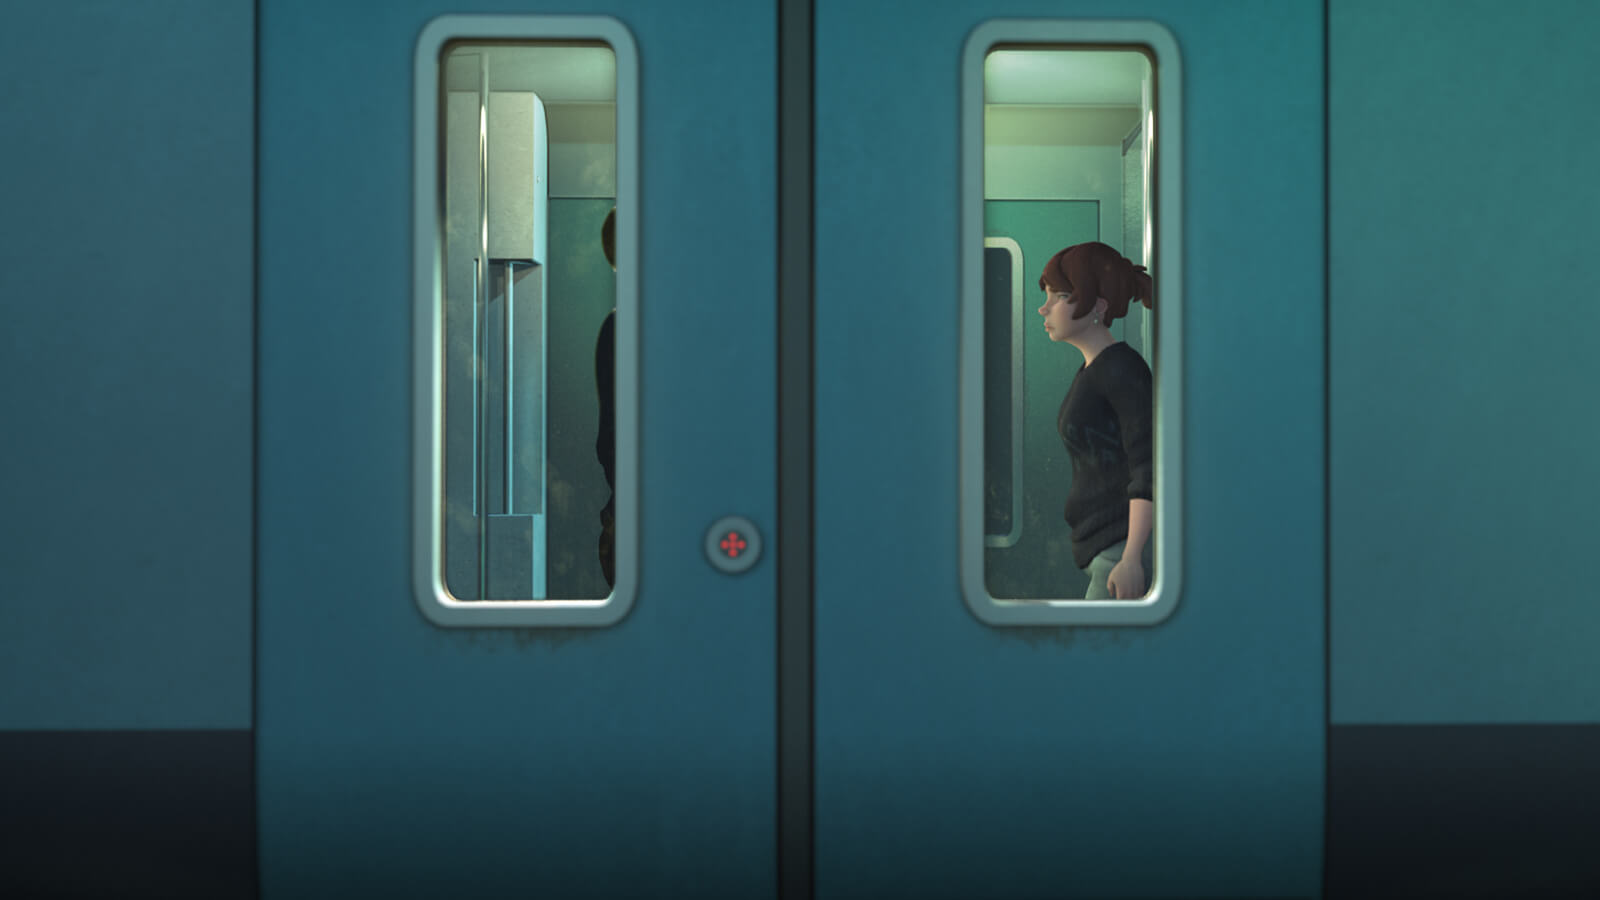 A woman in a black sweater from the side as seen through the vertical window in a train car's sliding doors.